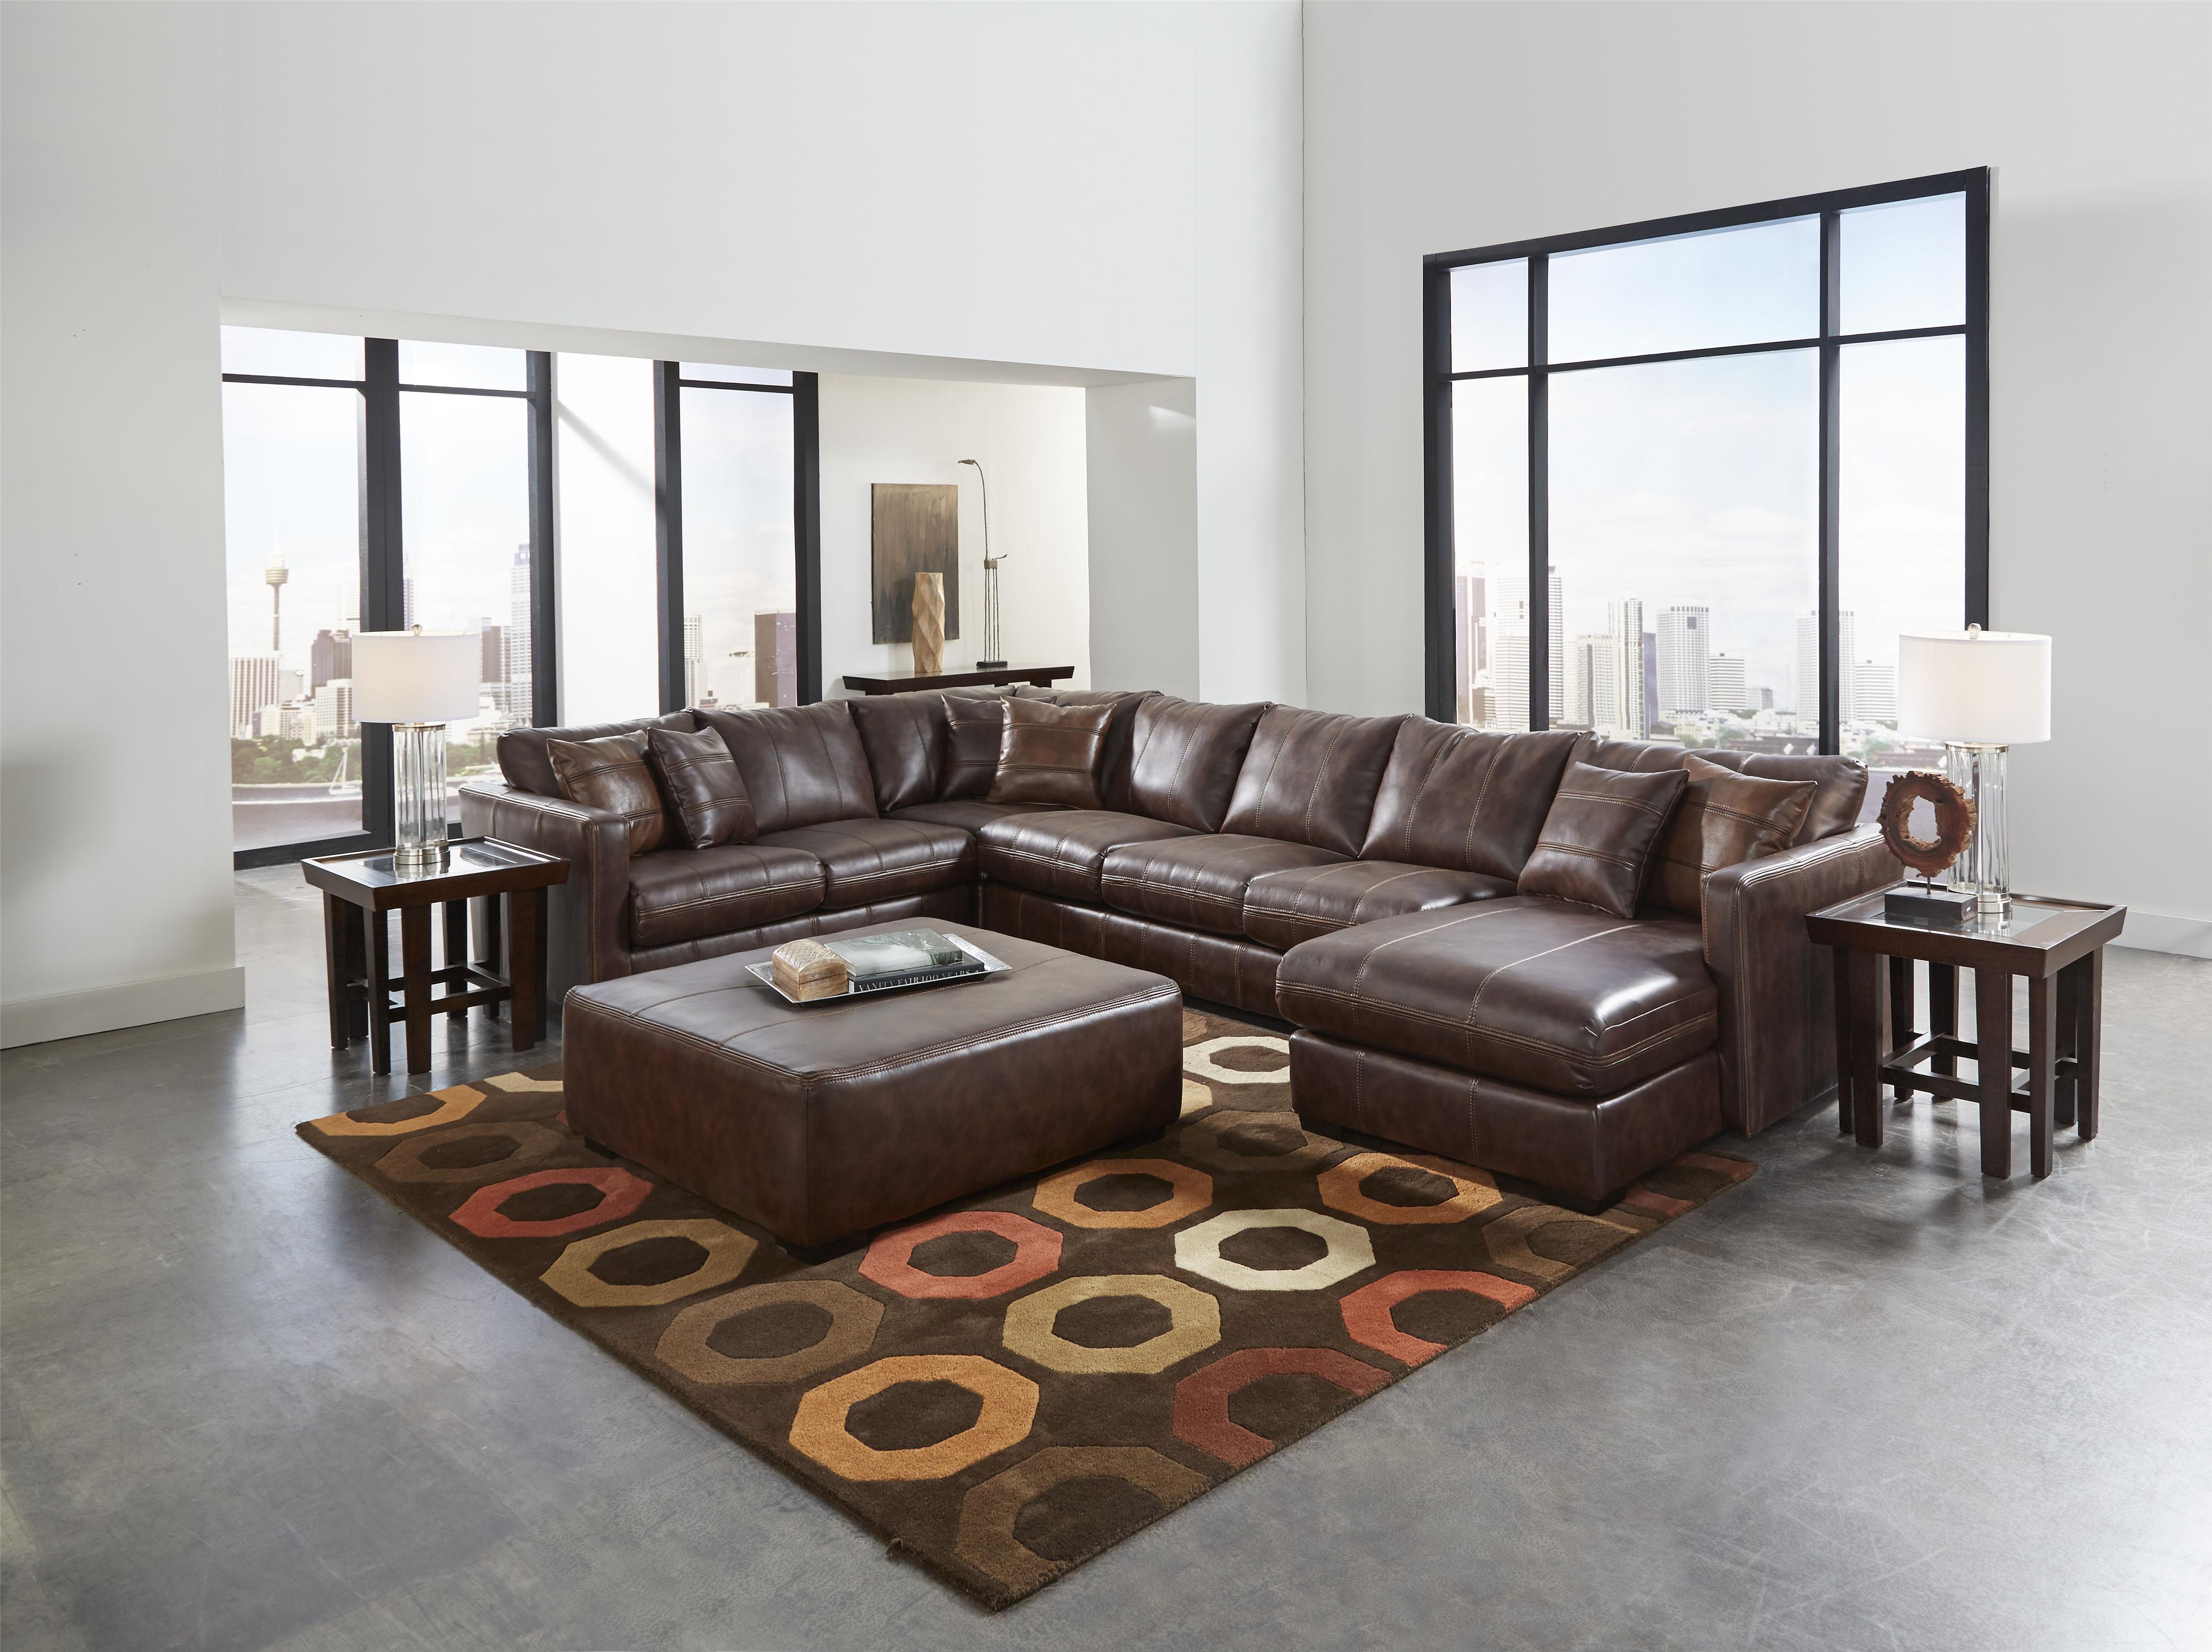 Sectional Sofa with Six Seats one is a chaise by Jackson